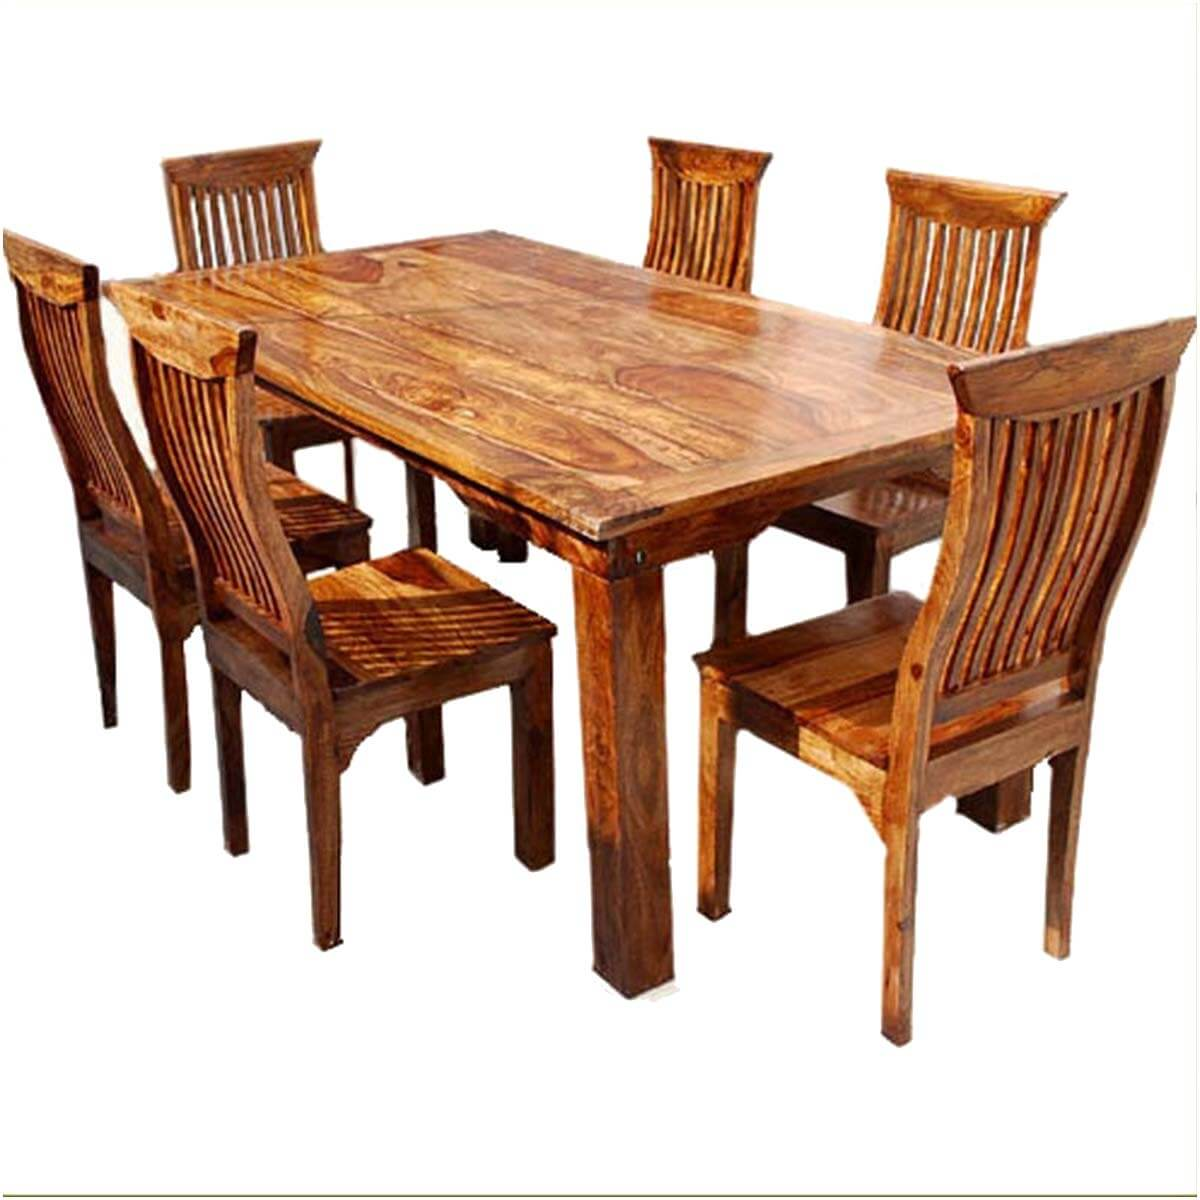 Dallas Ranch Solid Wood Rustic Dining Table Chairs & Hutch Set